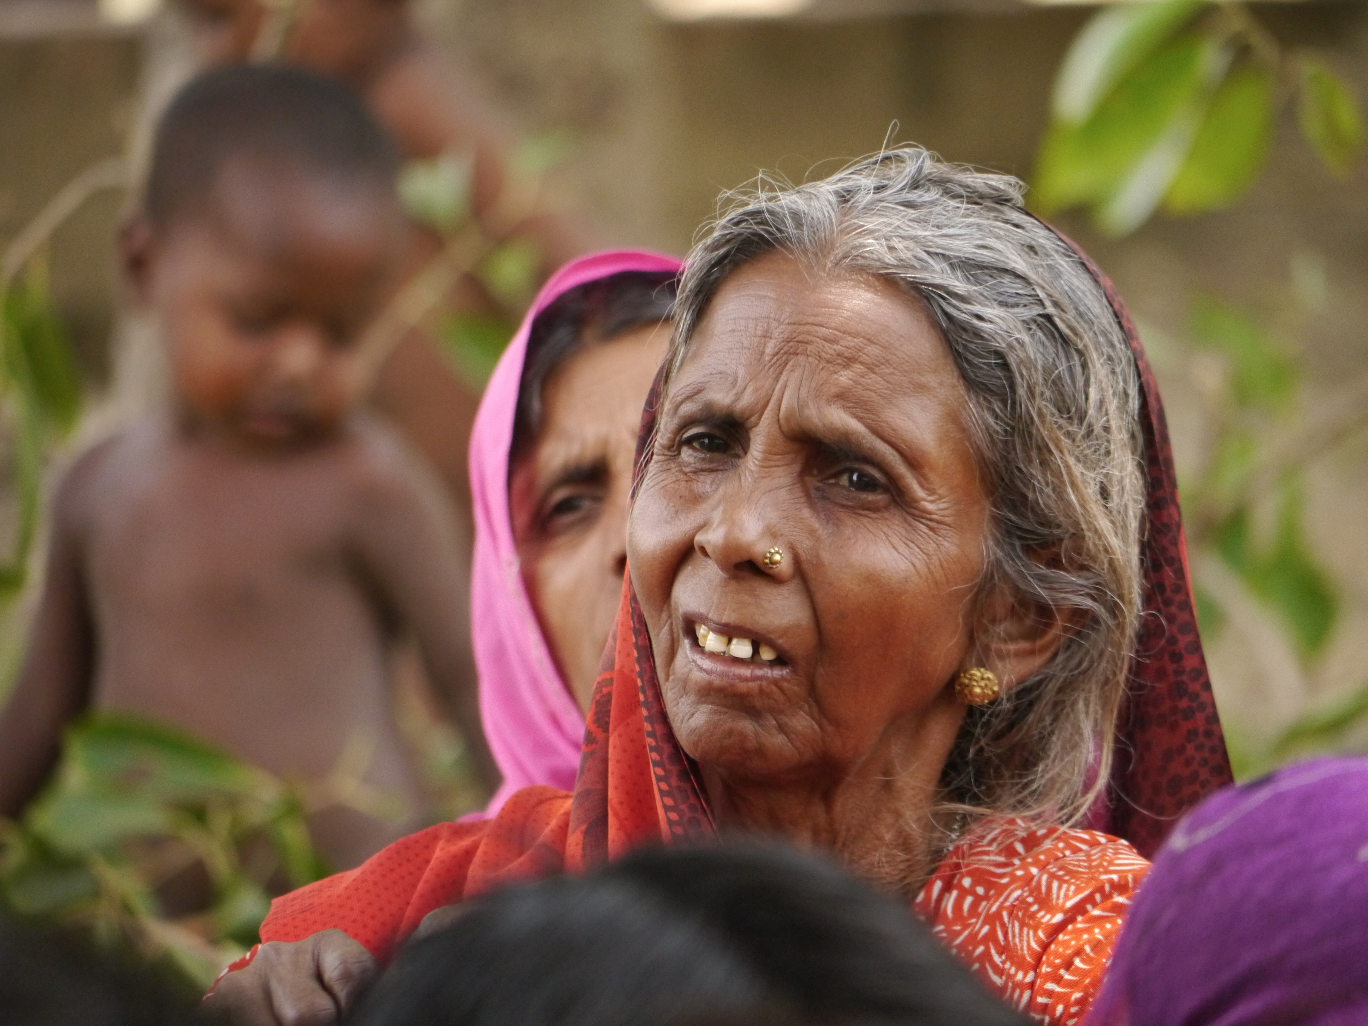 One of the elders of the village.